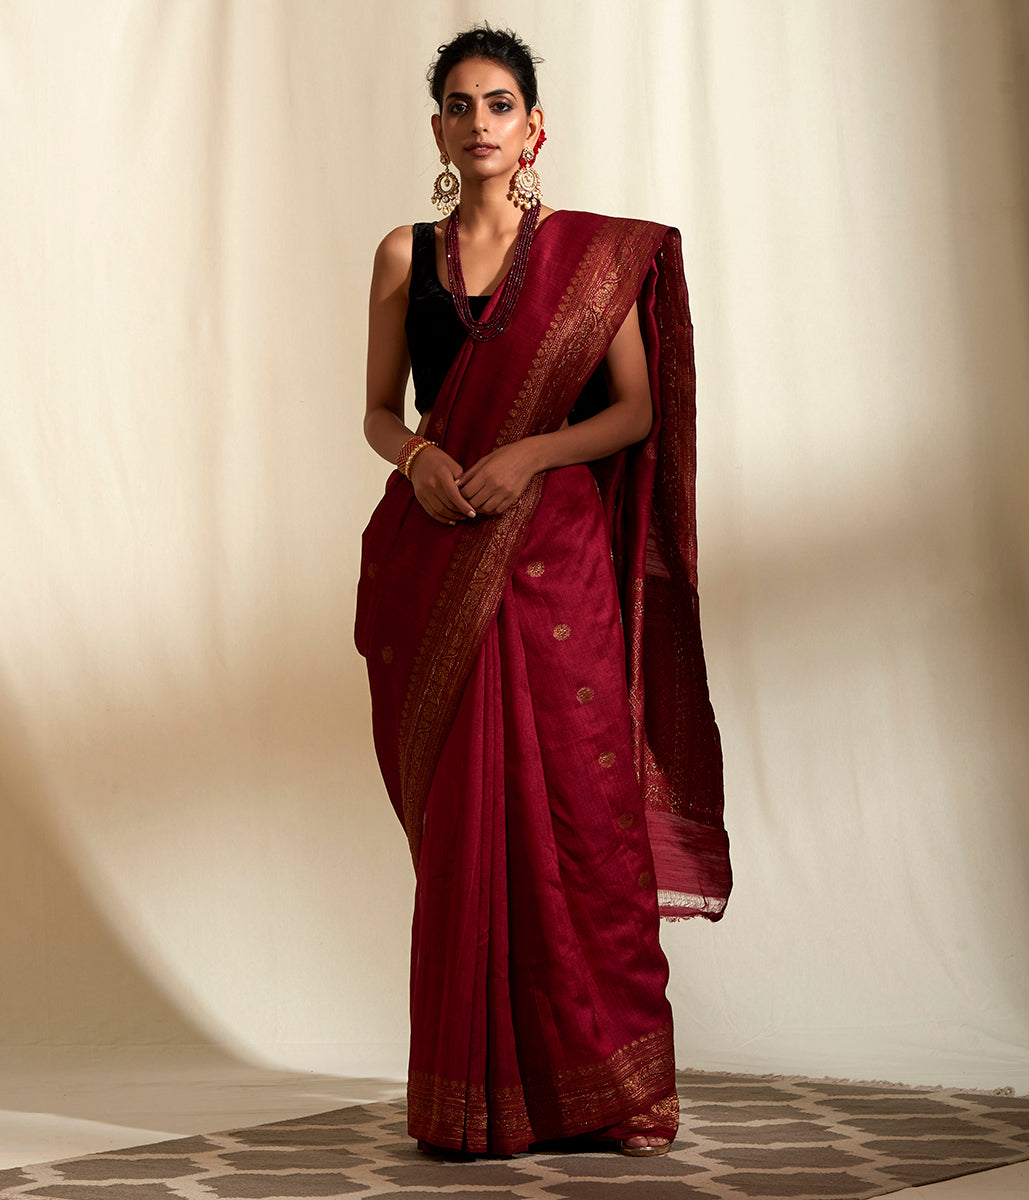 Handwoven Mahroon Munga silk Banarasi with Meena Booti Saree